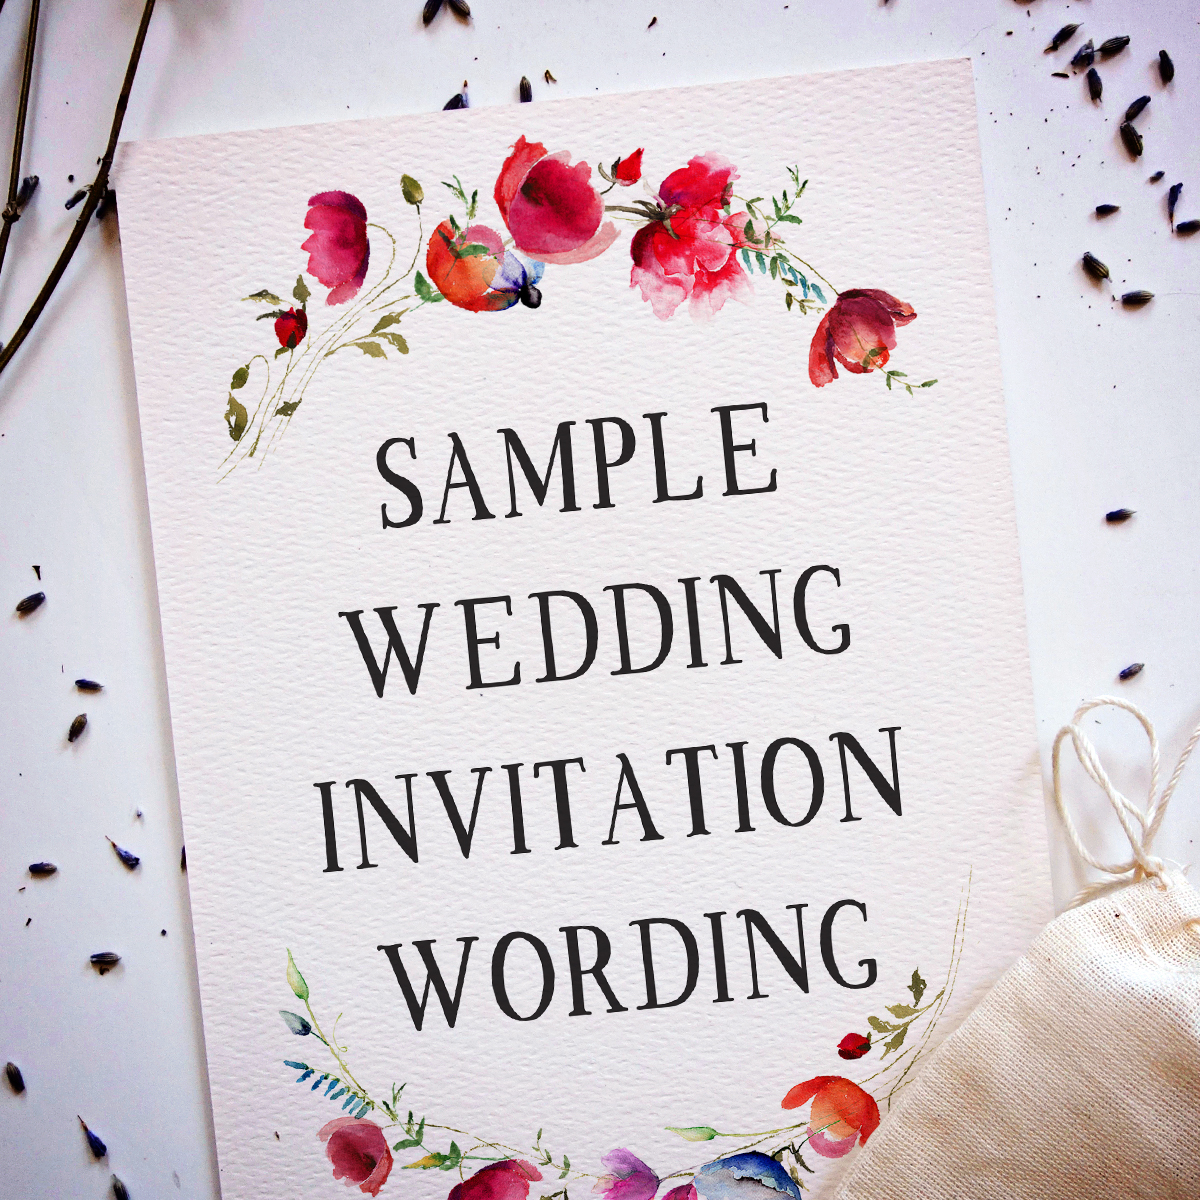 Sample Wedding Invitation Card: Wedding Wording Samples And Ideas For Indian Wedding